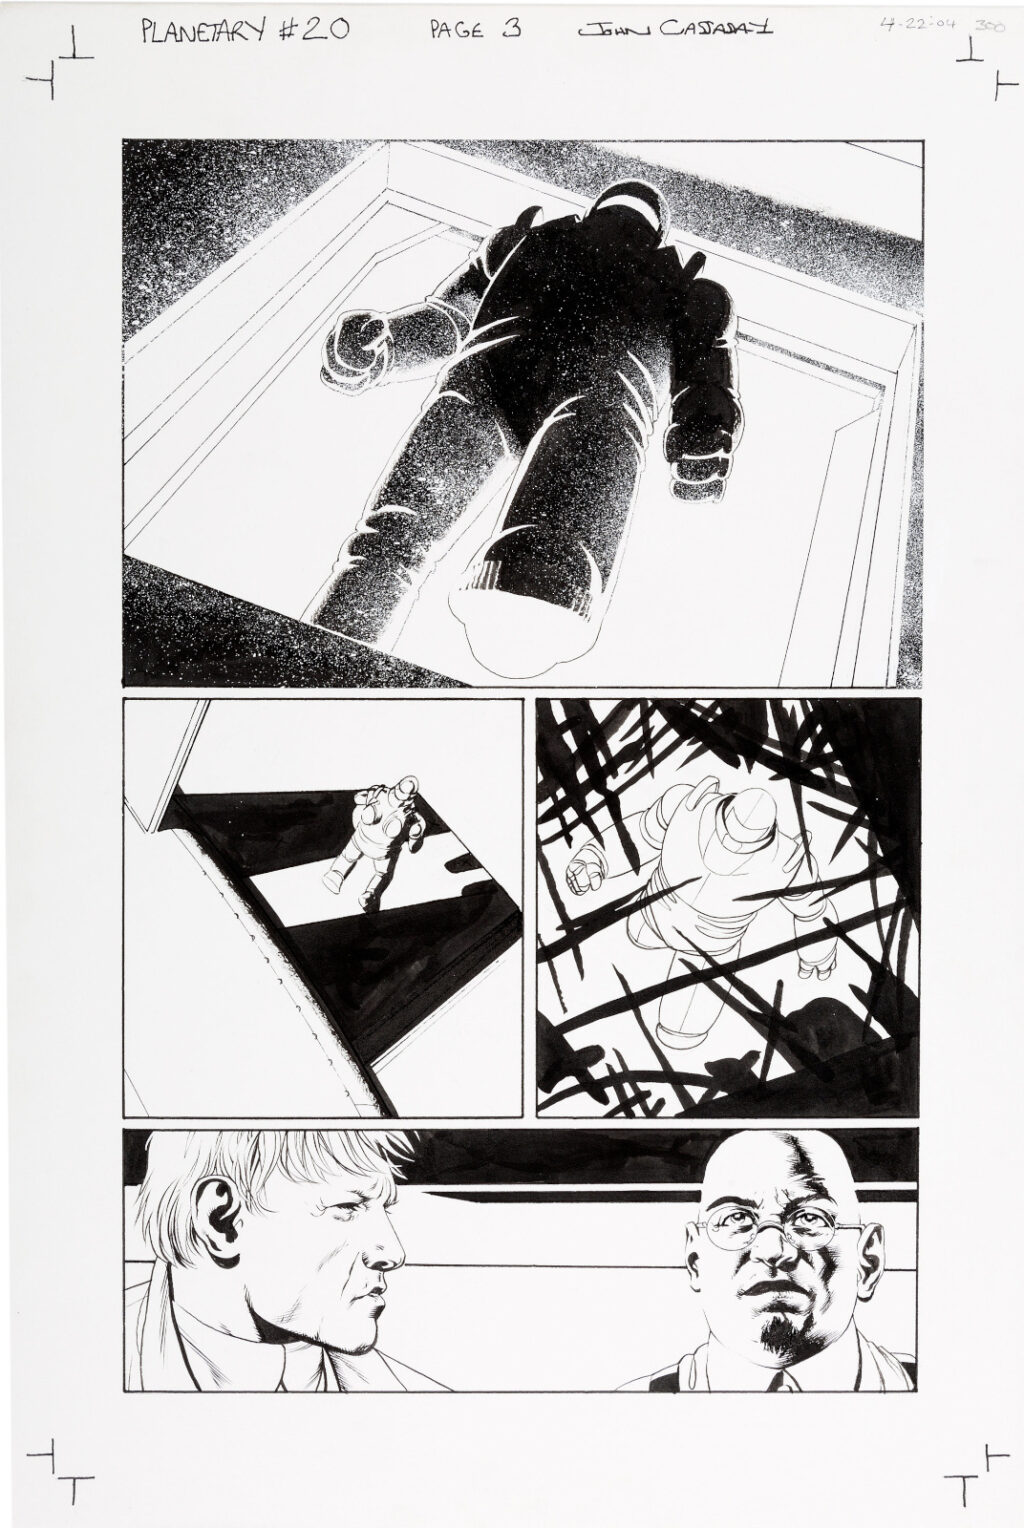 Planetary issue 20 page 3 by John Cassaday